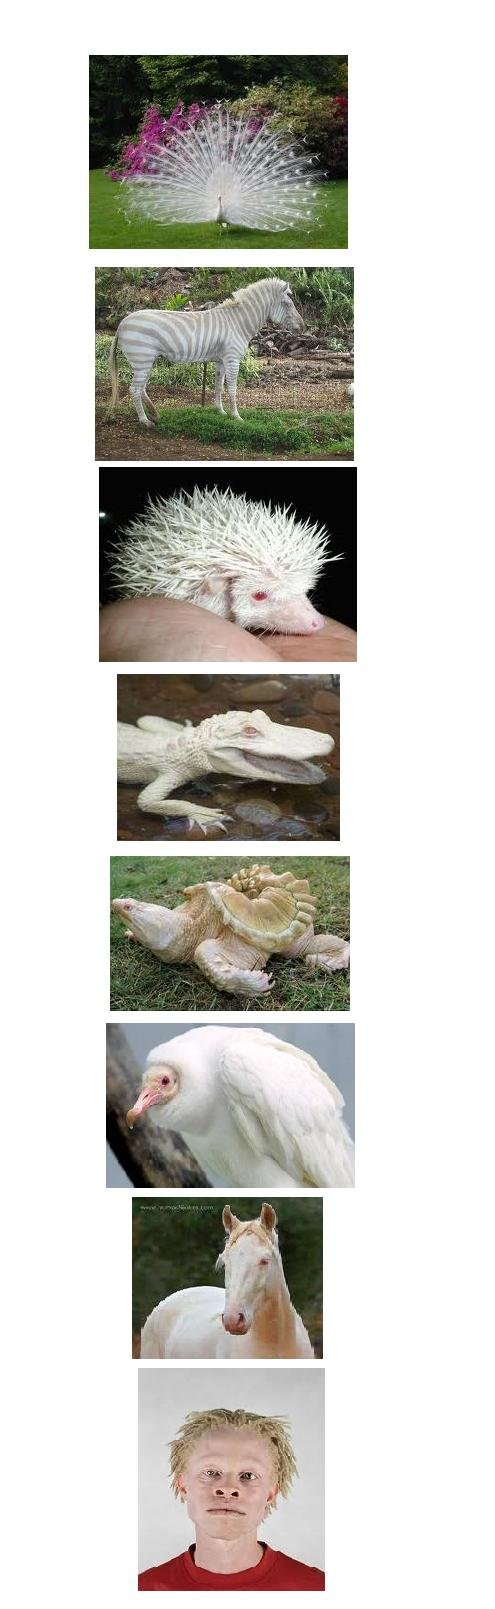 albino fun. pretty crazy stuff, must of us don't get to see like this because albino animals only live a short life<br /> (btw last pic is a black albino.